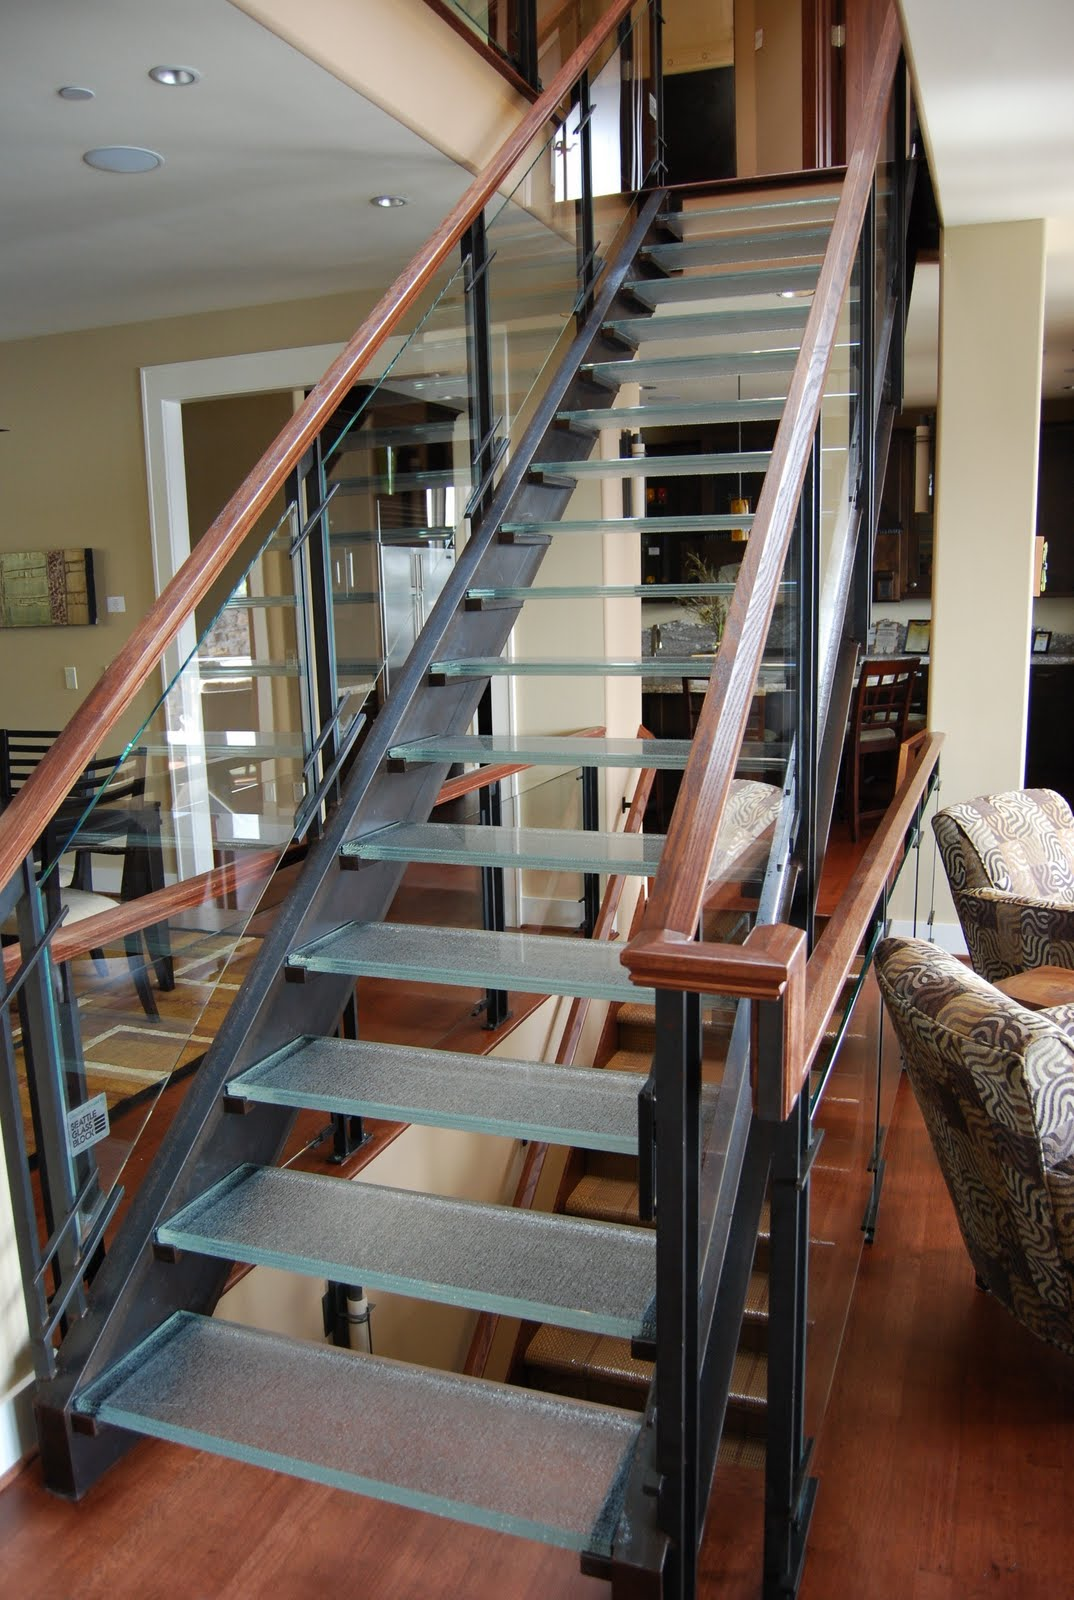 ... Staircase Incorporated Glass As The Main Component To Allow Light To  Flow From The Skylight Above To All The Living Spaces Below. The Glass  Stair Treads ...